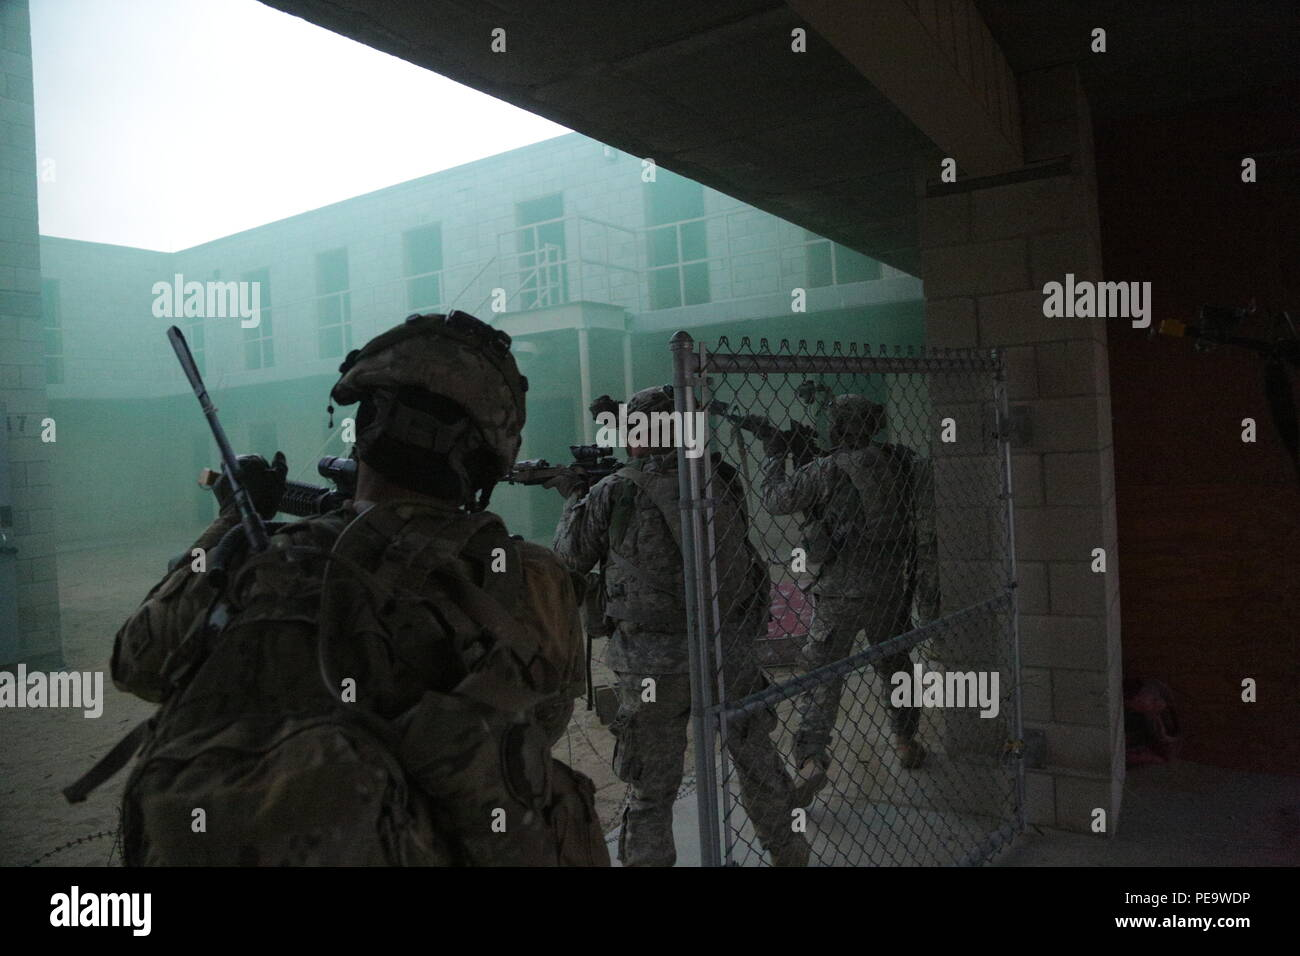 U.S. Soldiers assigned to 2nd Battalion, 12th Infantry Brigade Combat Team, 4th Infantry Division, infiltrate a prison compound overrun by the enemies during Decisive Action Rotation 16-02 at the National Training Center, Fort Irwin, Calif., Nov. 13, 2015. Decisive Action Rotations are designed to give soldiers real-life experience before deployment. (U.S. Army photo by Pfc. Christopher Lett) - Stock Image